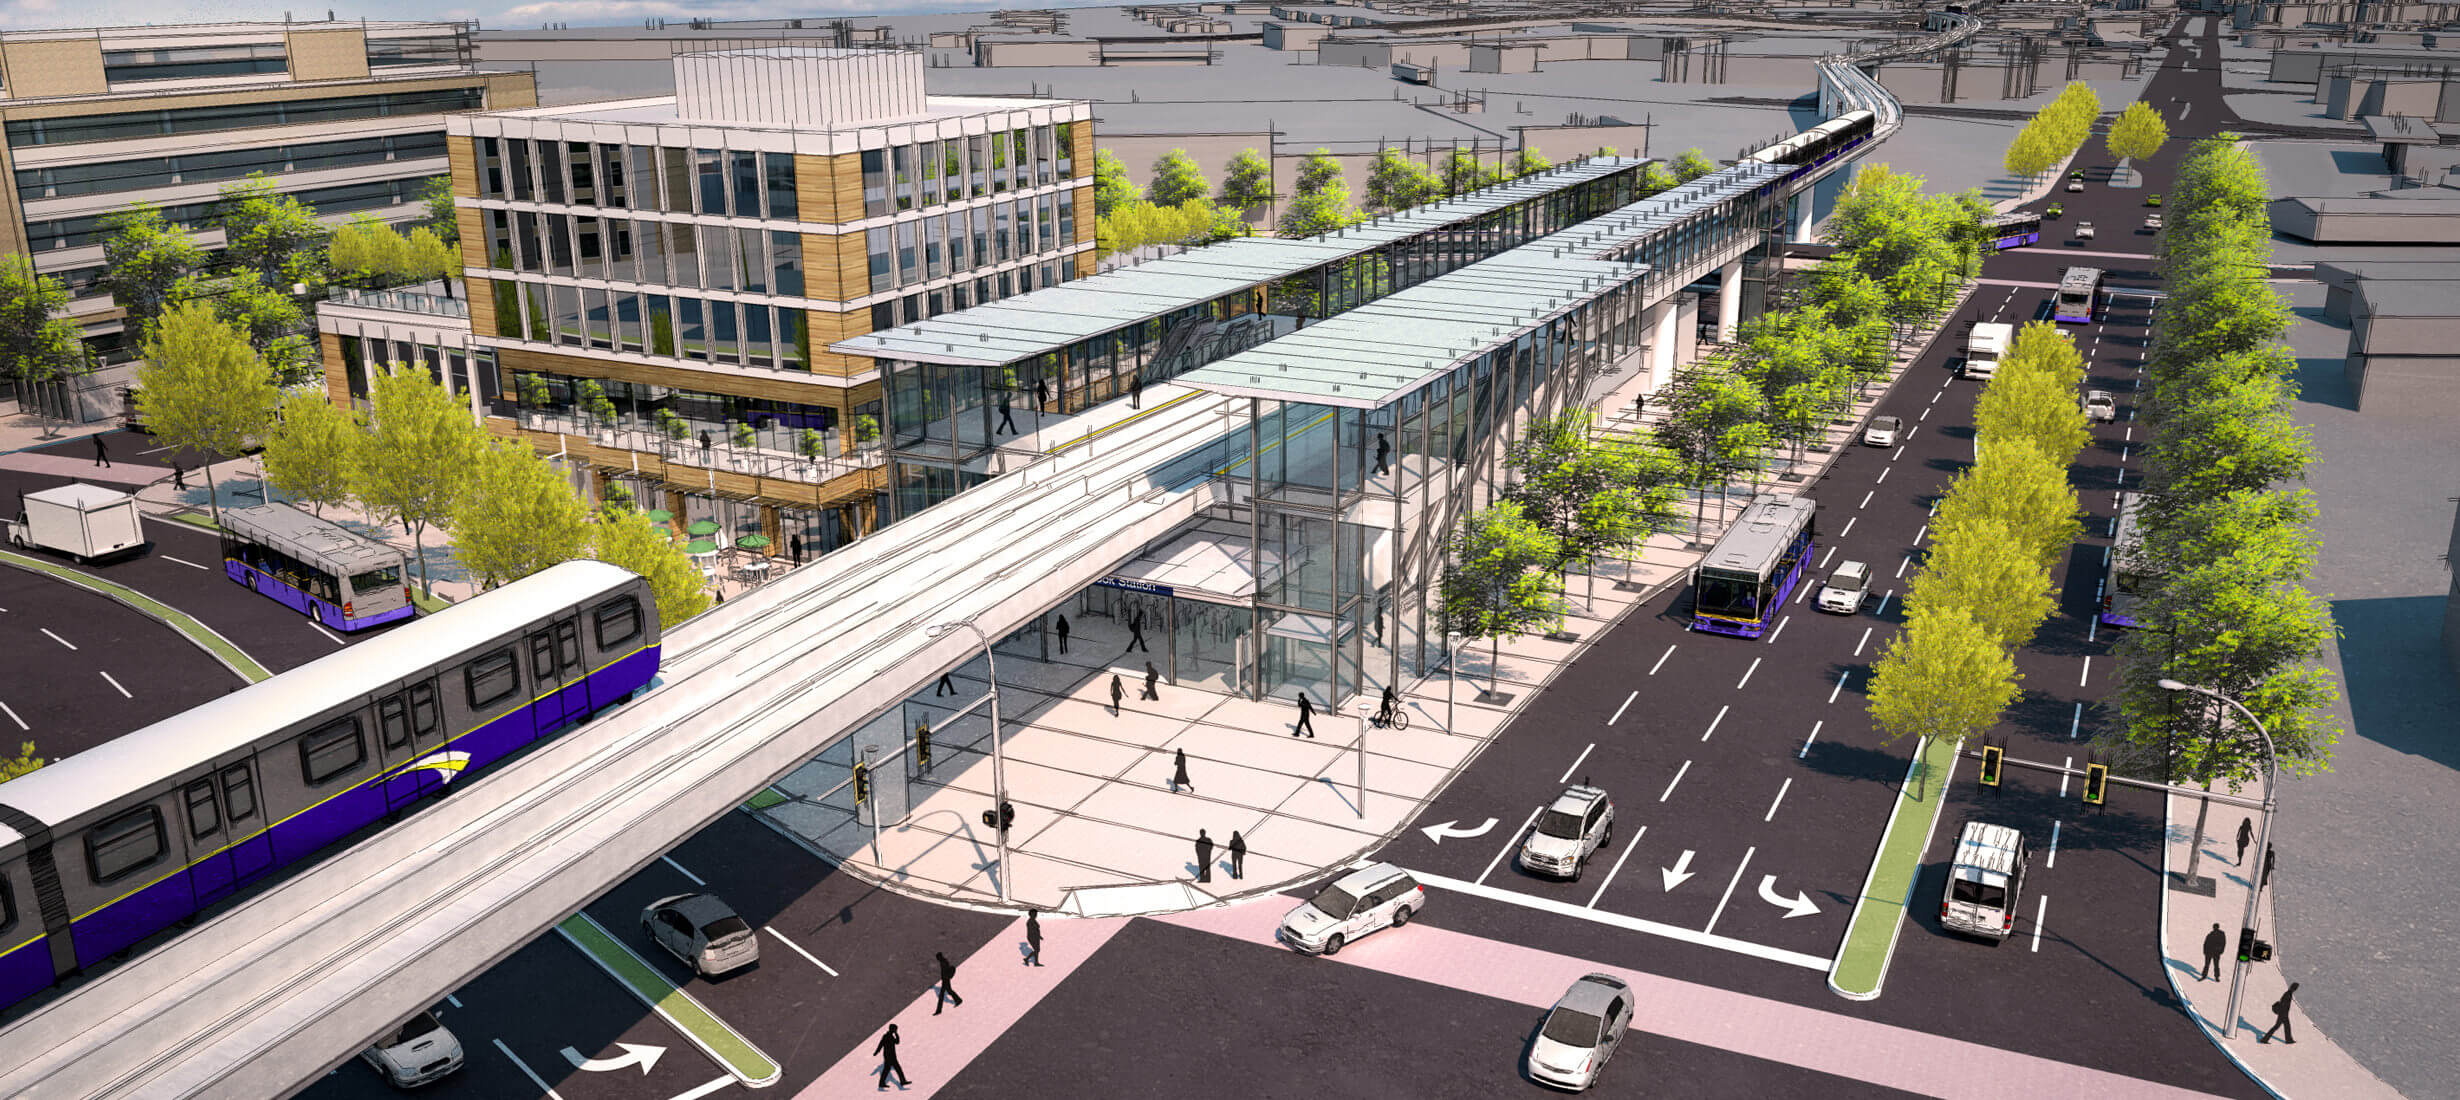 SkyTrain to have 60% higher return-on-investment than previously planned LRT